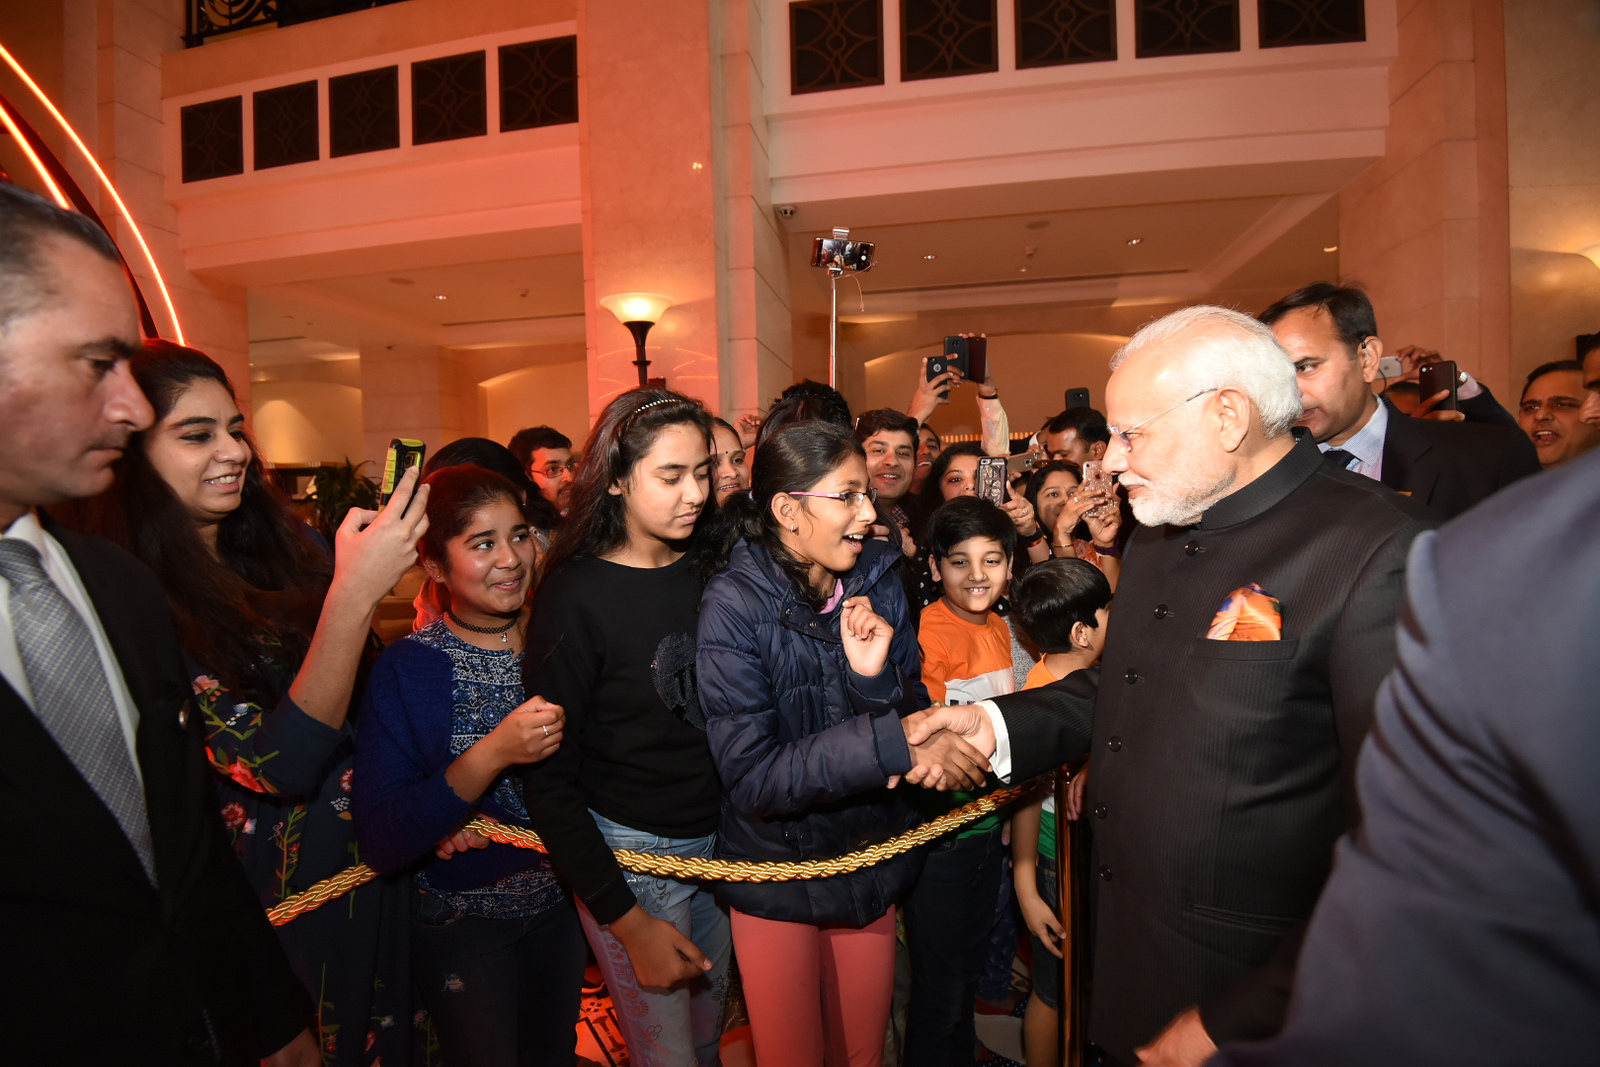 history was in the making as Narendra Modi became the first Indian Prime Minister to visit Palestine. He underlined India's support for a sovereign and independent Palestine and hoped for return of peace in the region.